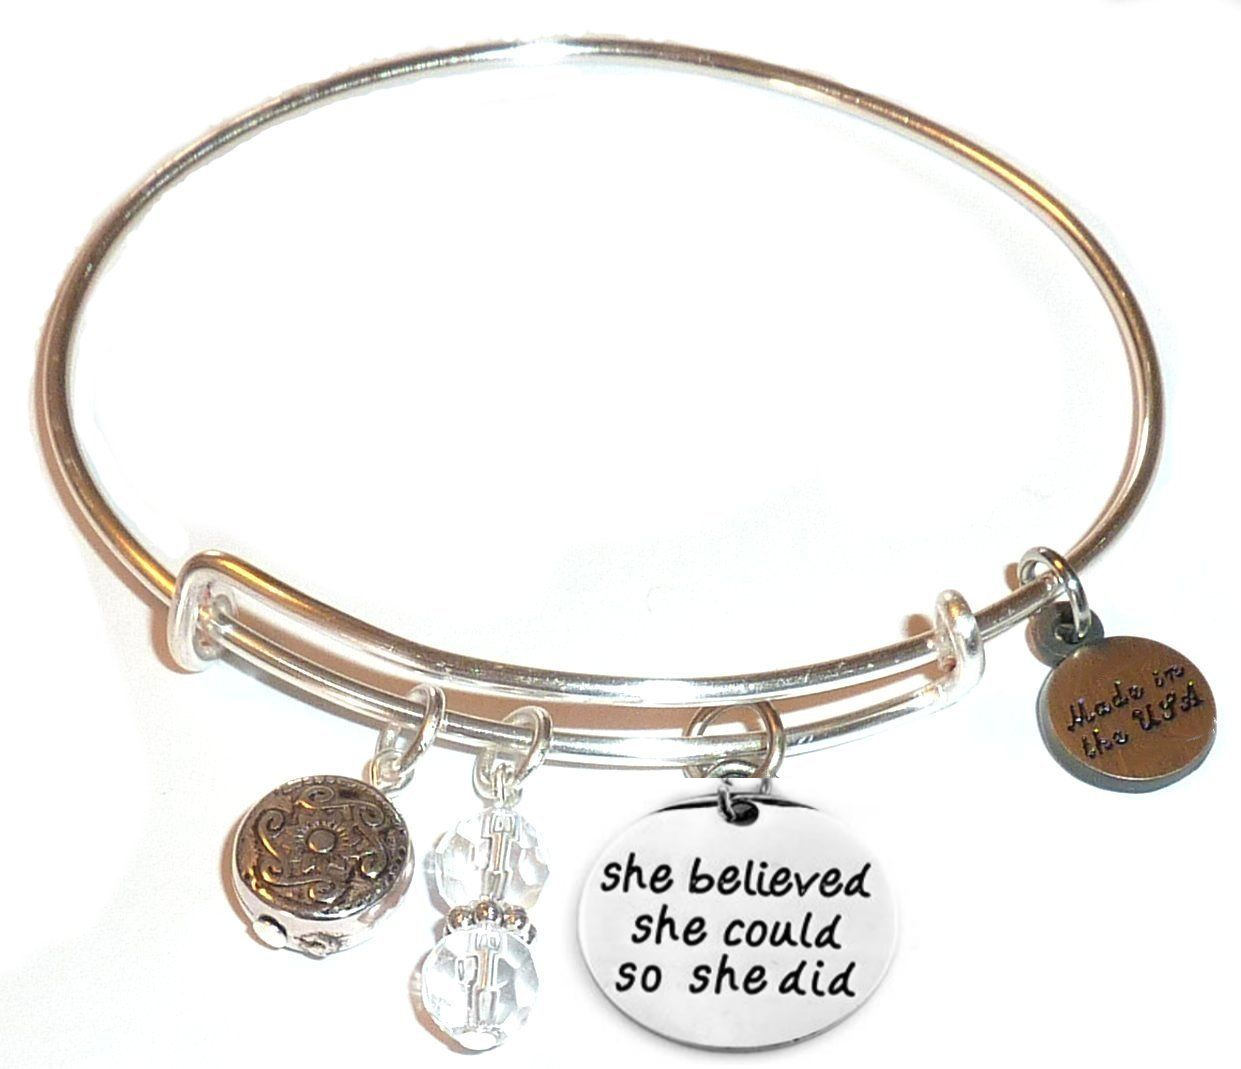 spring gift idea - bangle bracelet with she believed message